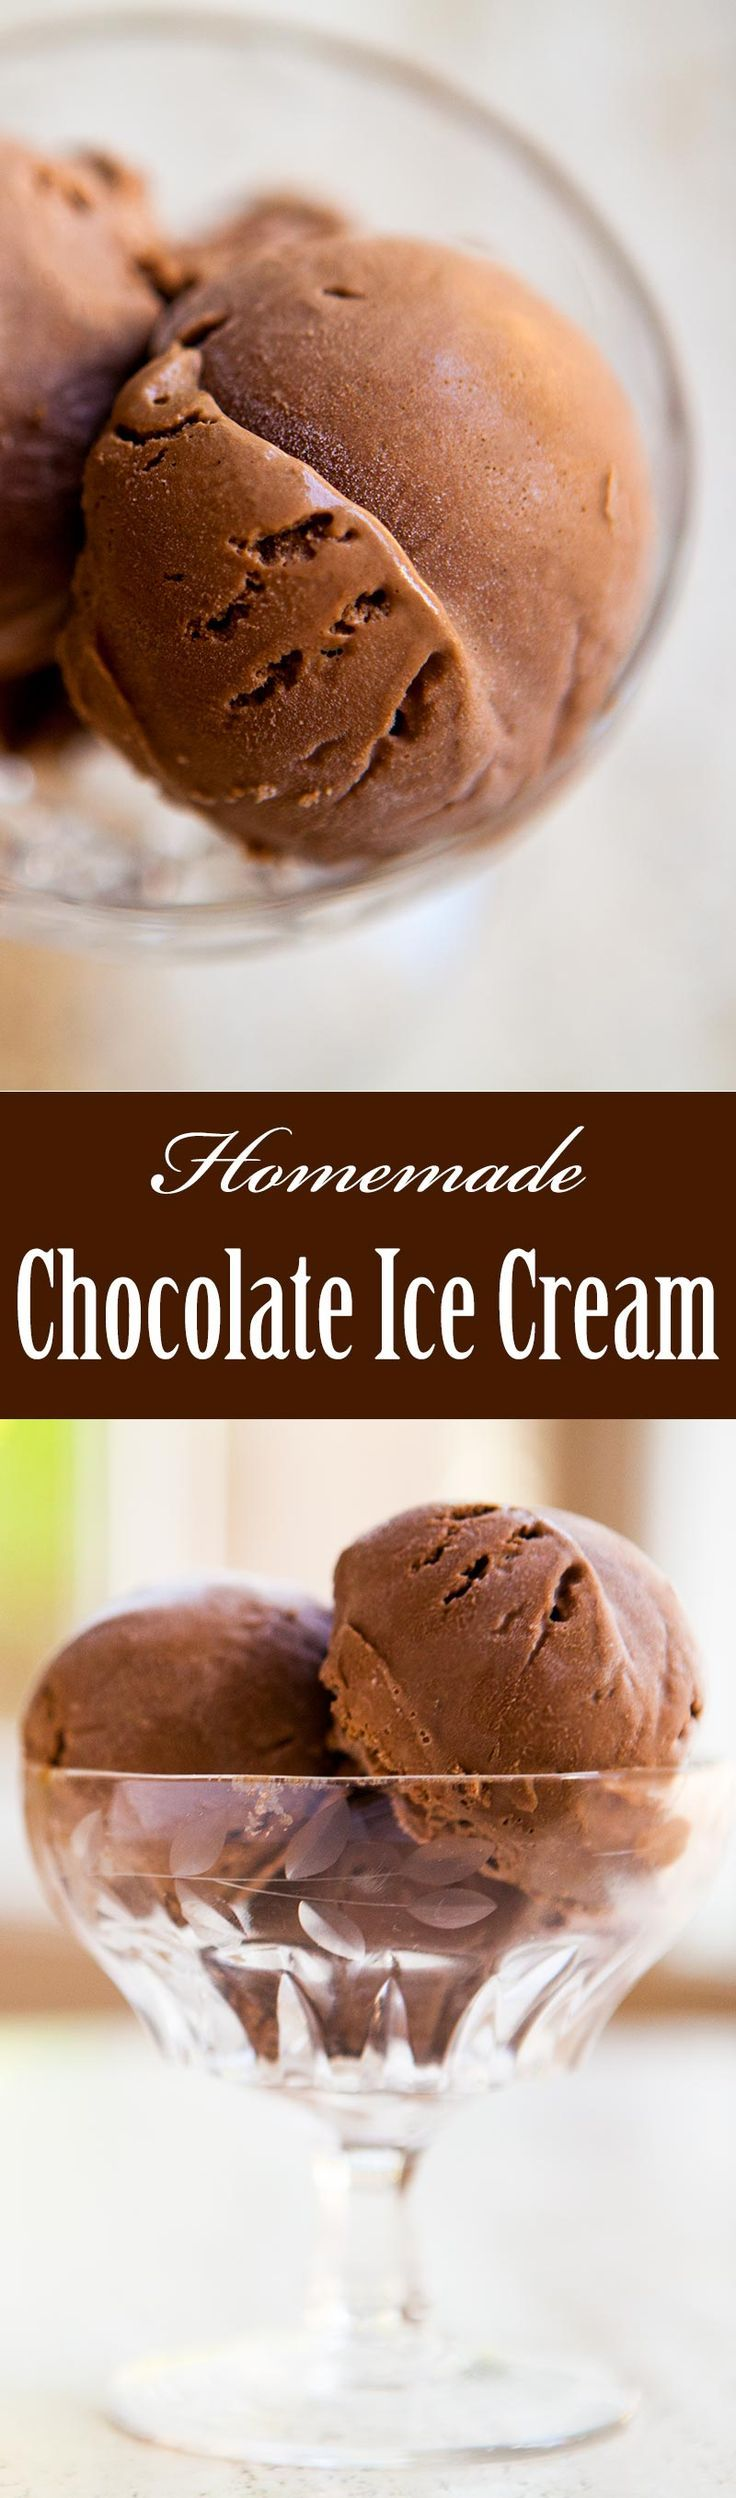 Learn how to make your own homemade rich and creamy chocolate ice cream! On http://SimplyRecipes.com